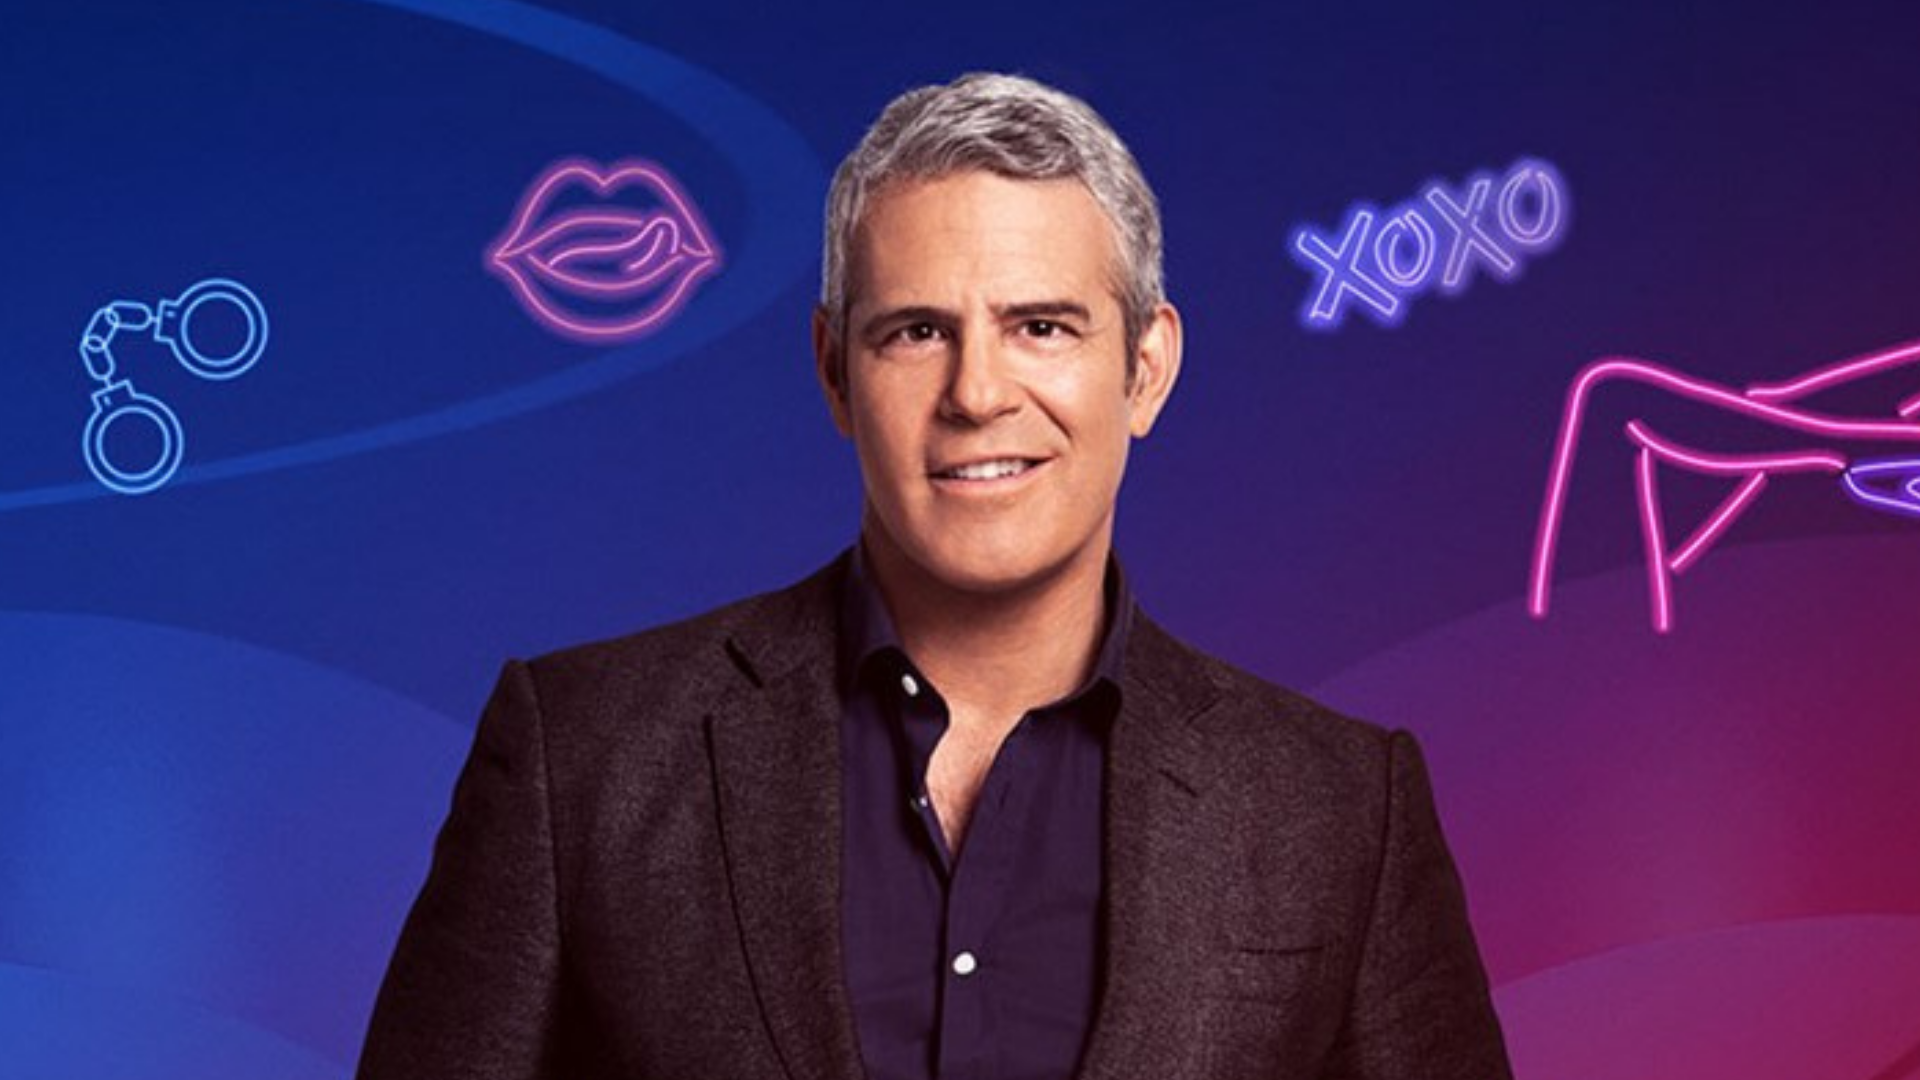 Ex-Rated With Andy Cohen - New Series August 30. Go to a video page.